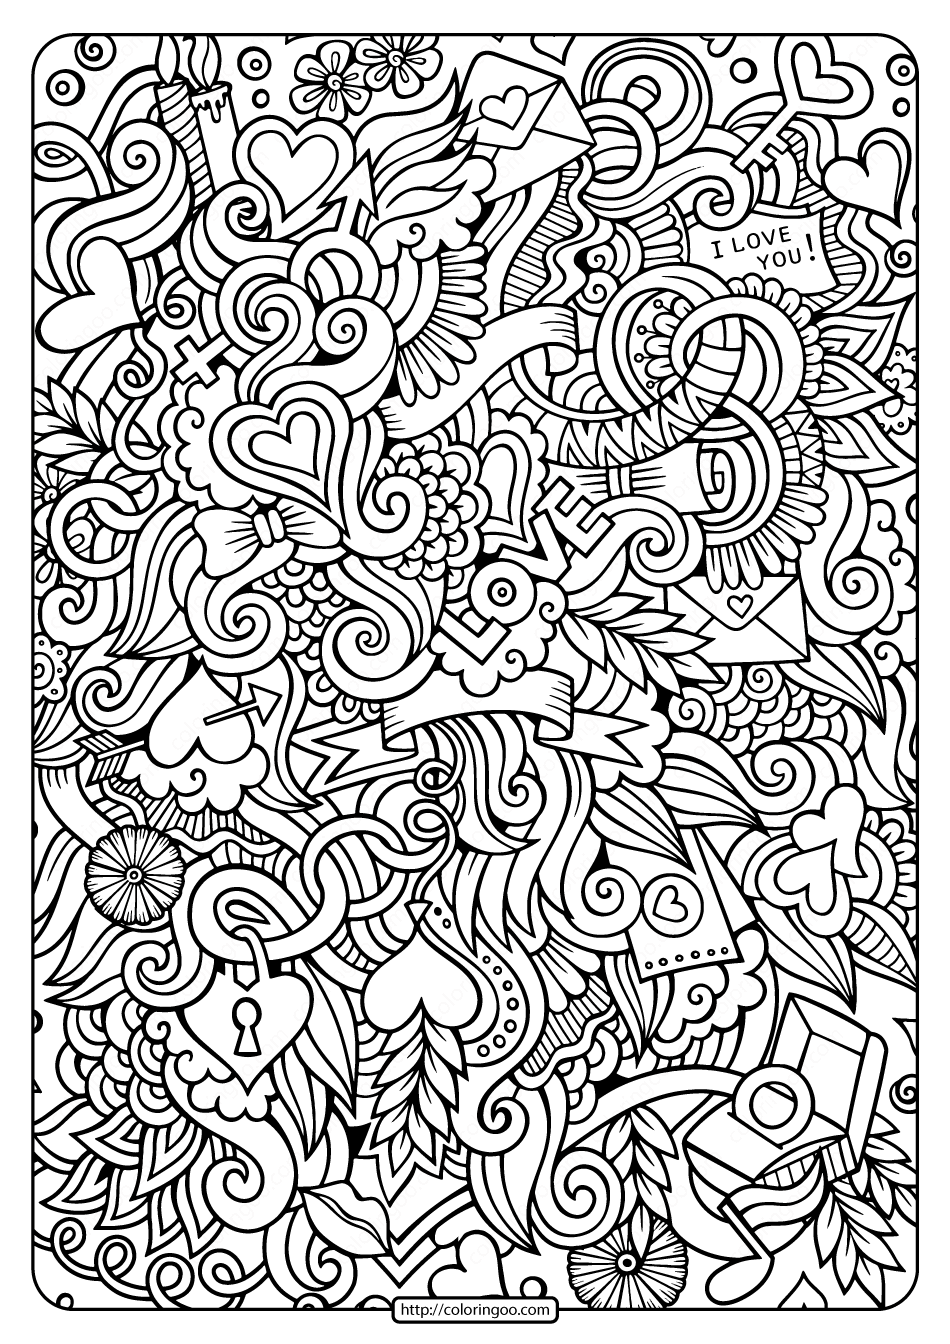 coloring book printable disney lovely ariel coloring pages coloring book